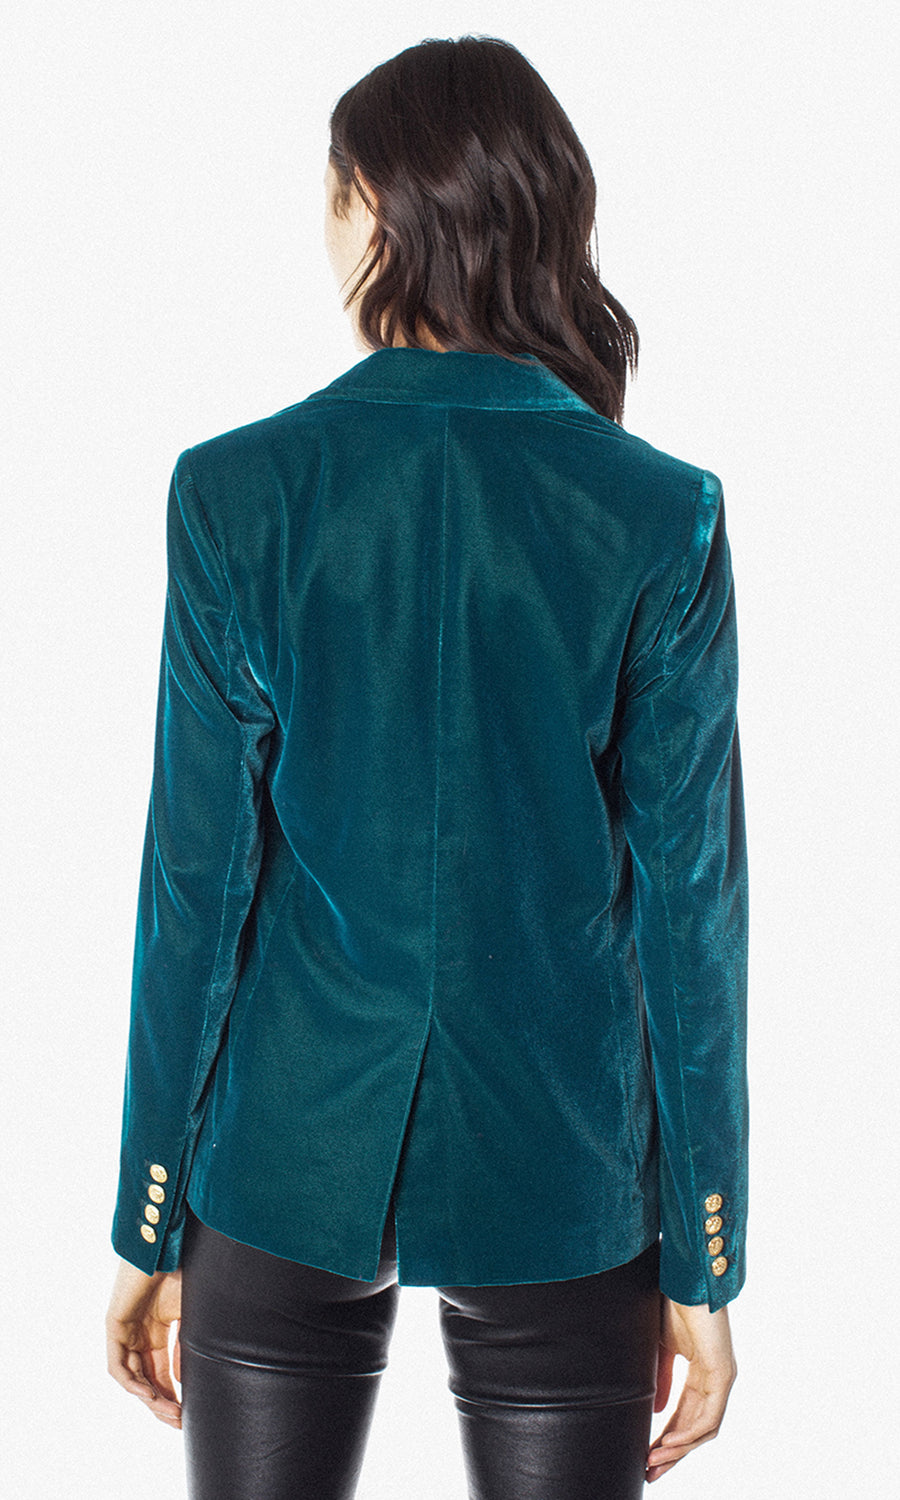 Savannah Blazer